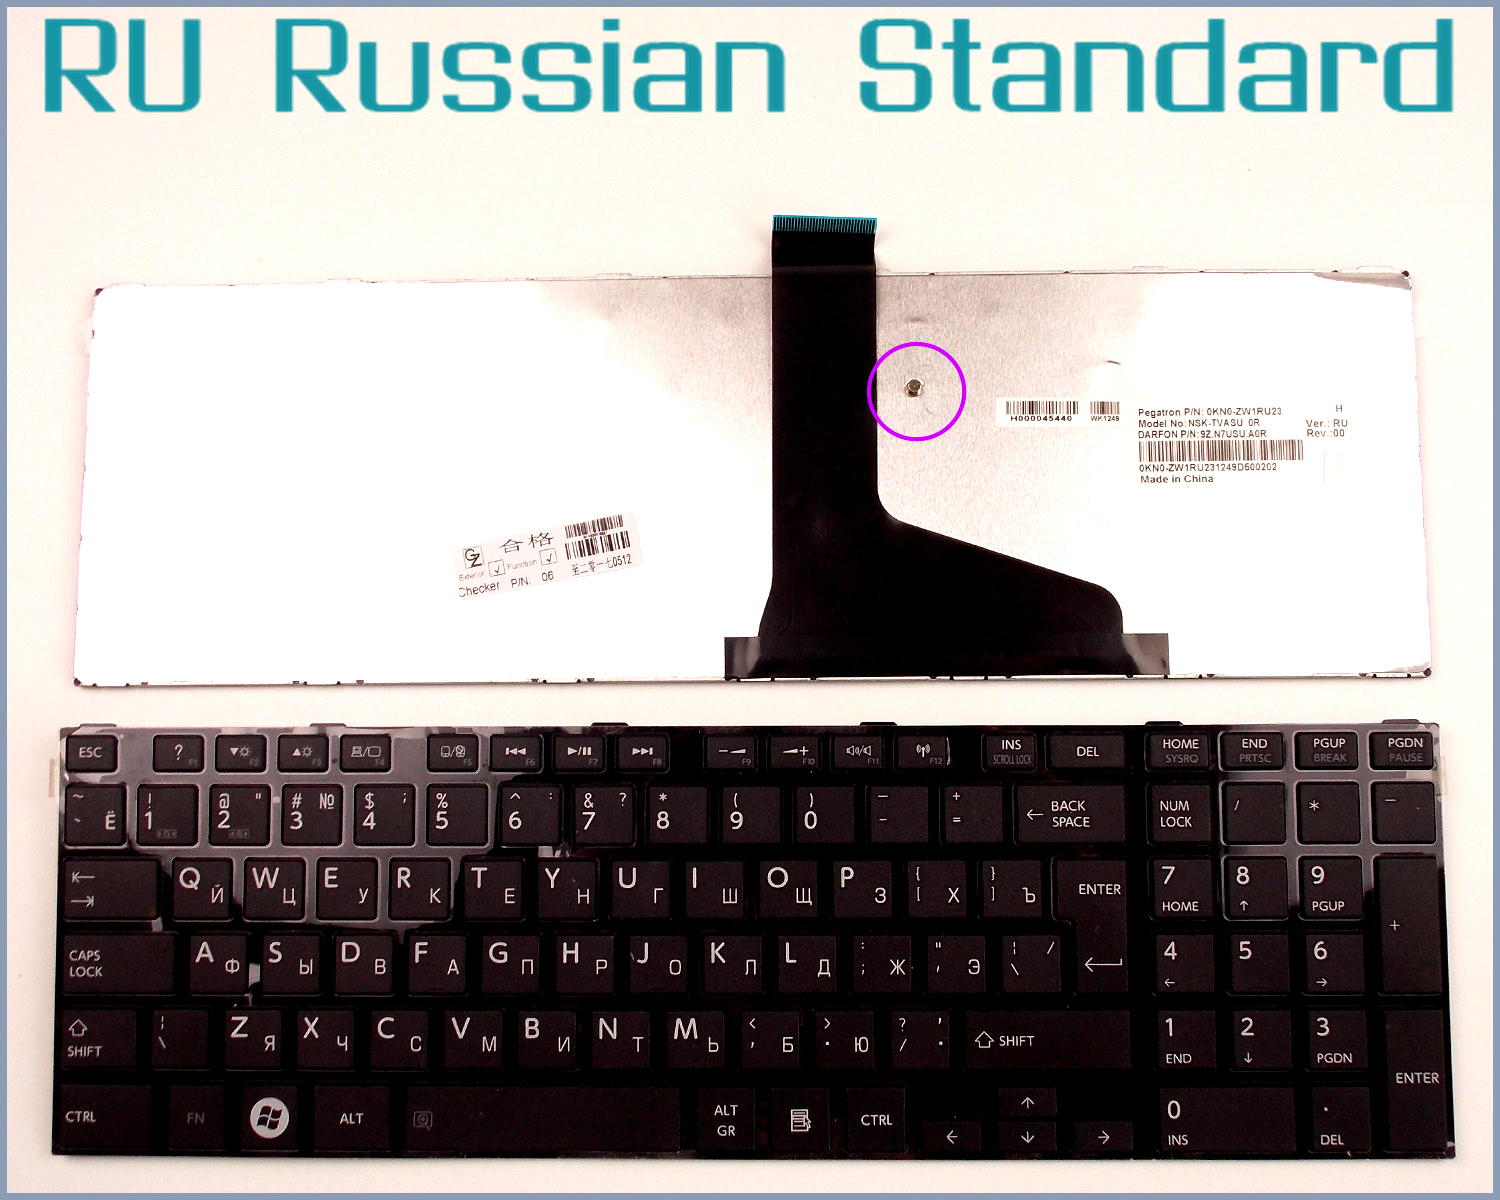 Russian RU Keyboard for Toshiba Satellite C855 C855D S850 S855 S870 S850D S855D S870D S875D L850 C850 L875D Laptop image